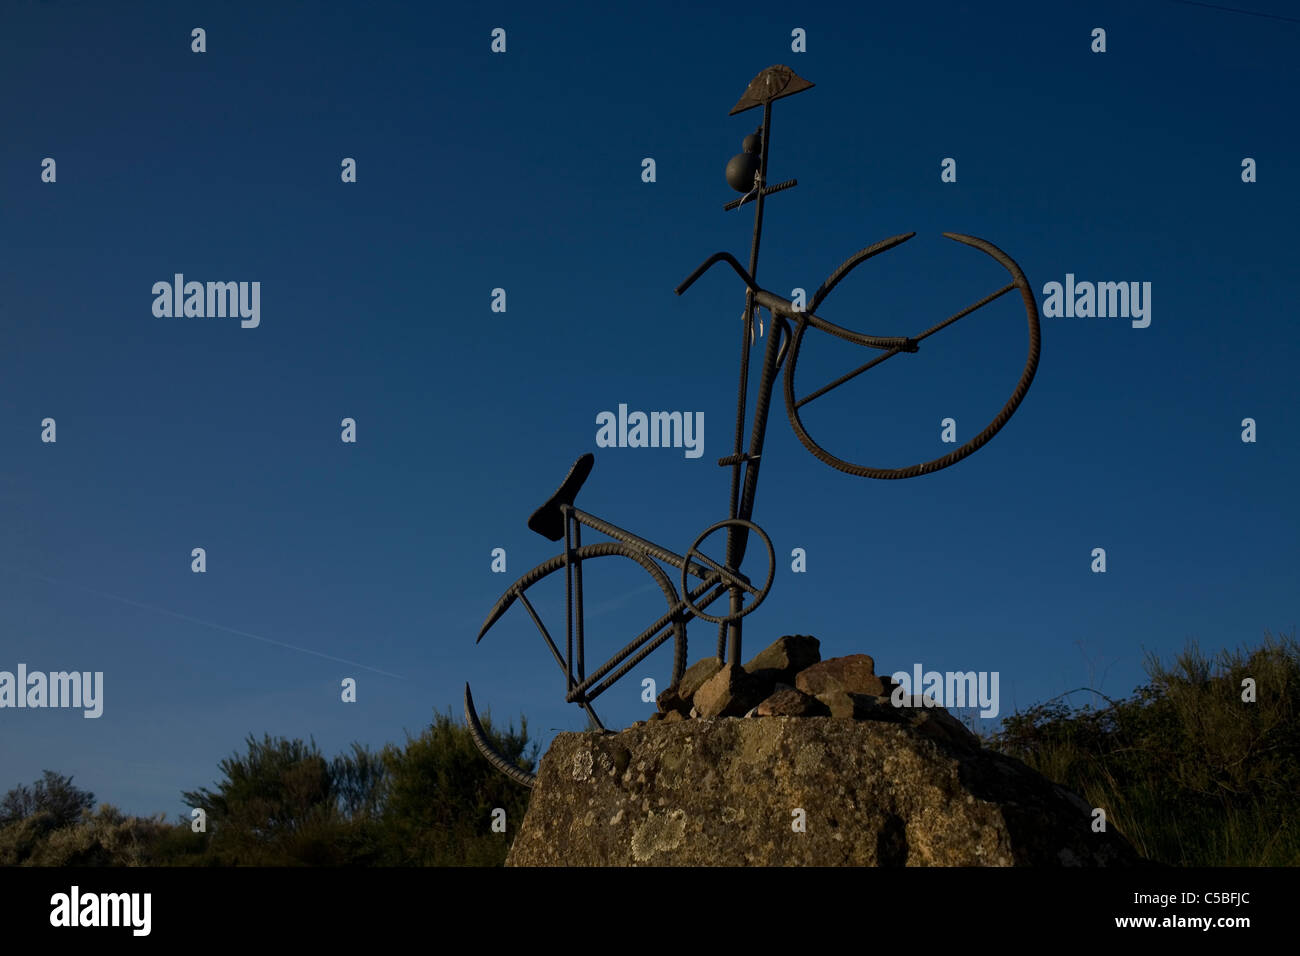 An sculpture of a bicycle is displayed in the French Way of St. James, El Bierzo region, Castilla y Leon, Spain, - Stock Image